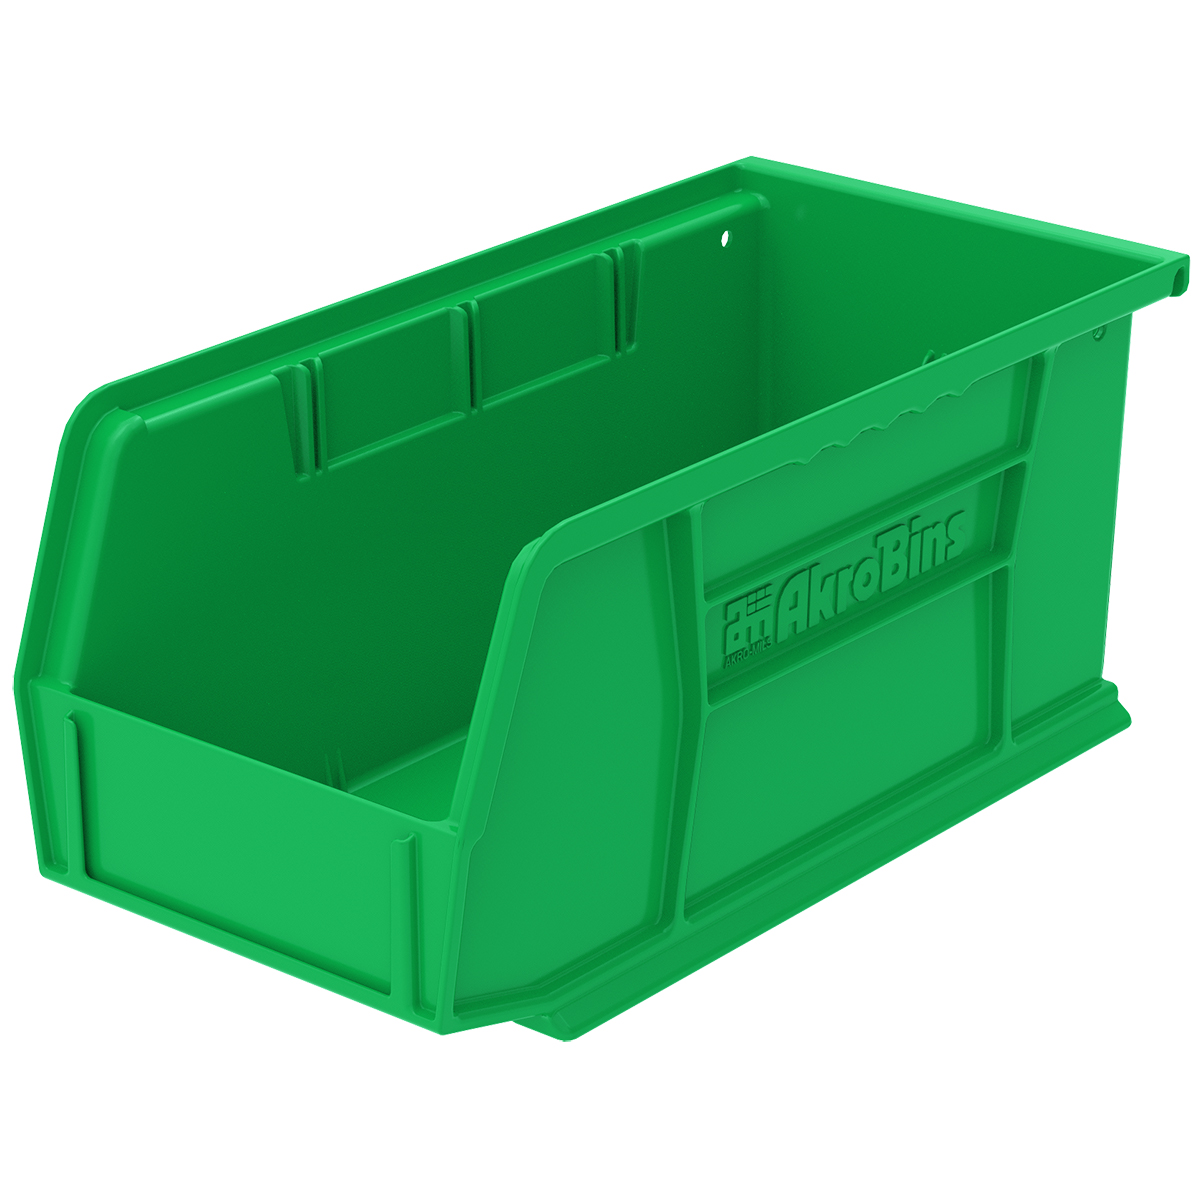 AkroBin 10-7/8 x 5-1/2 x 5, Green (30230GREEN).  This item sold in carton quantities of 12.